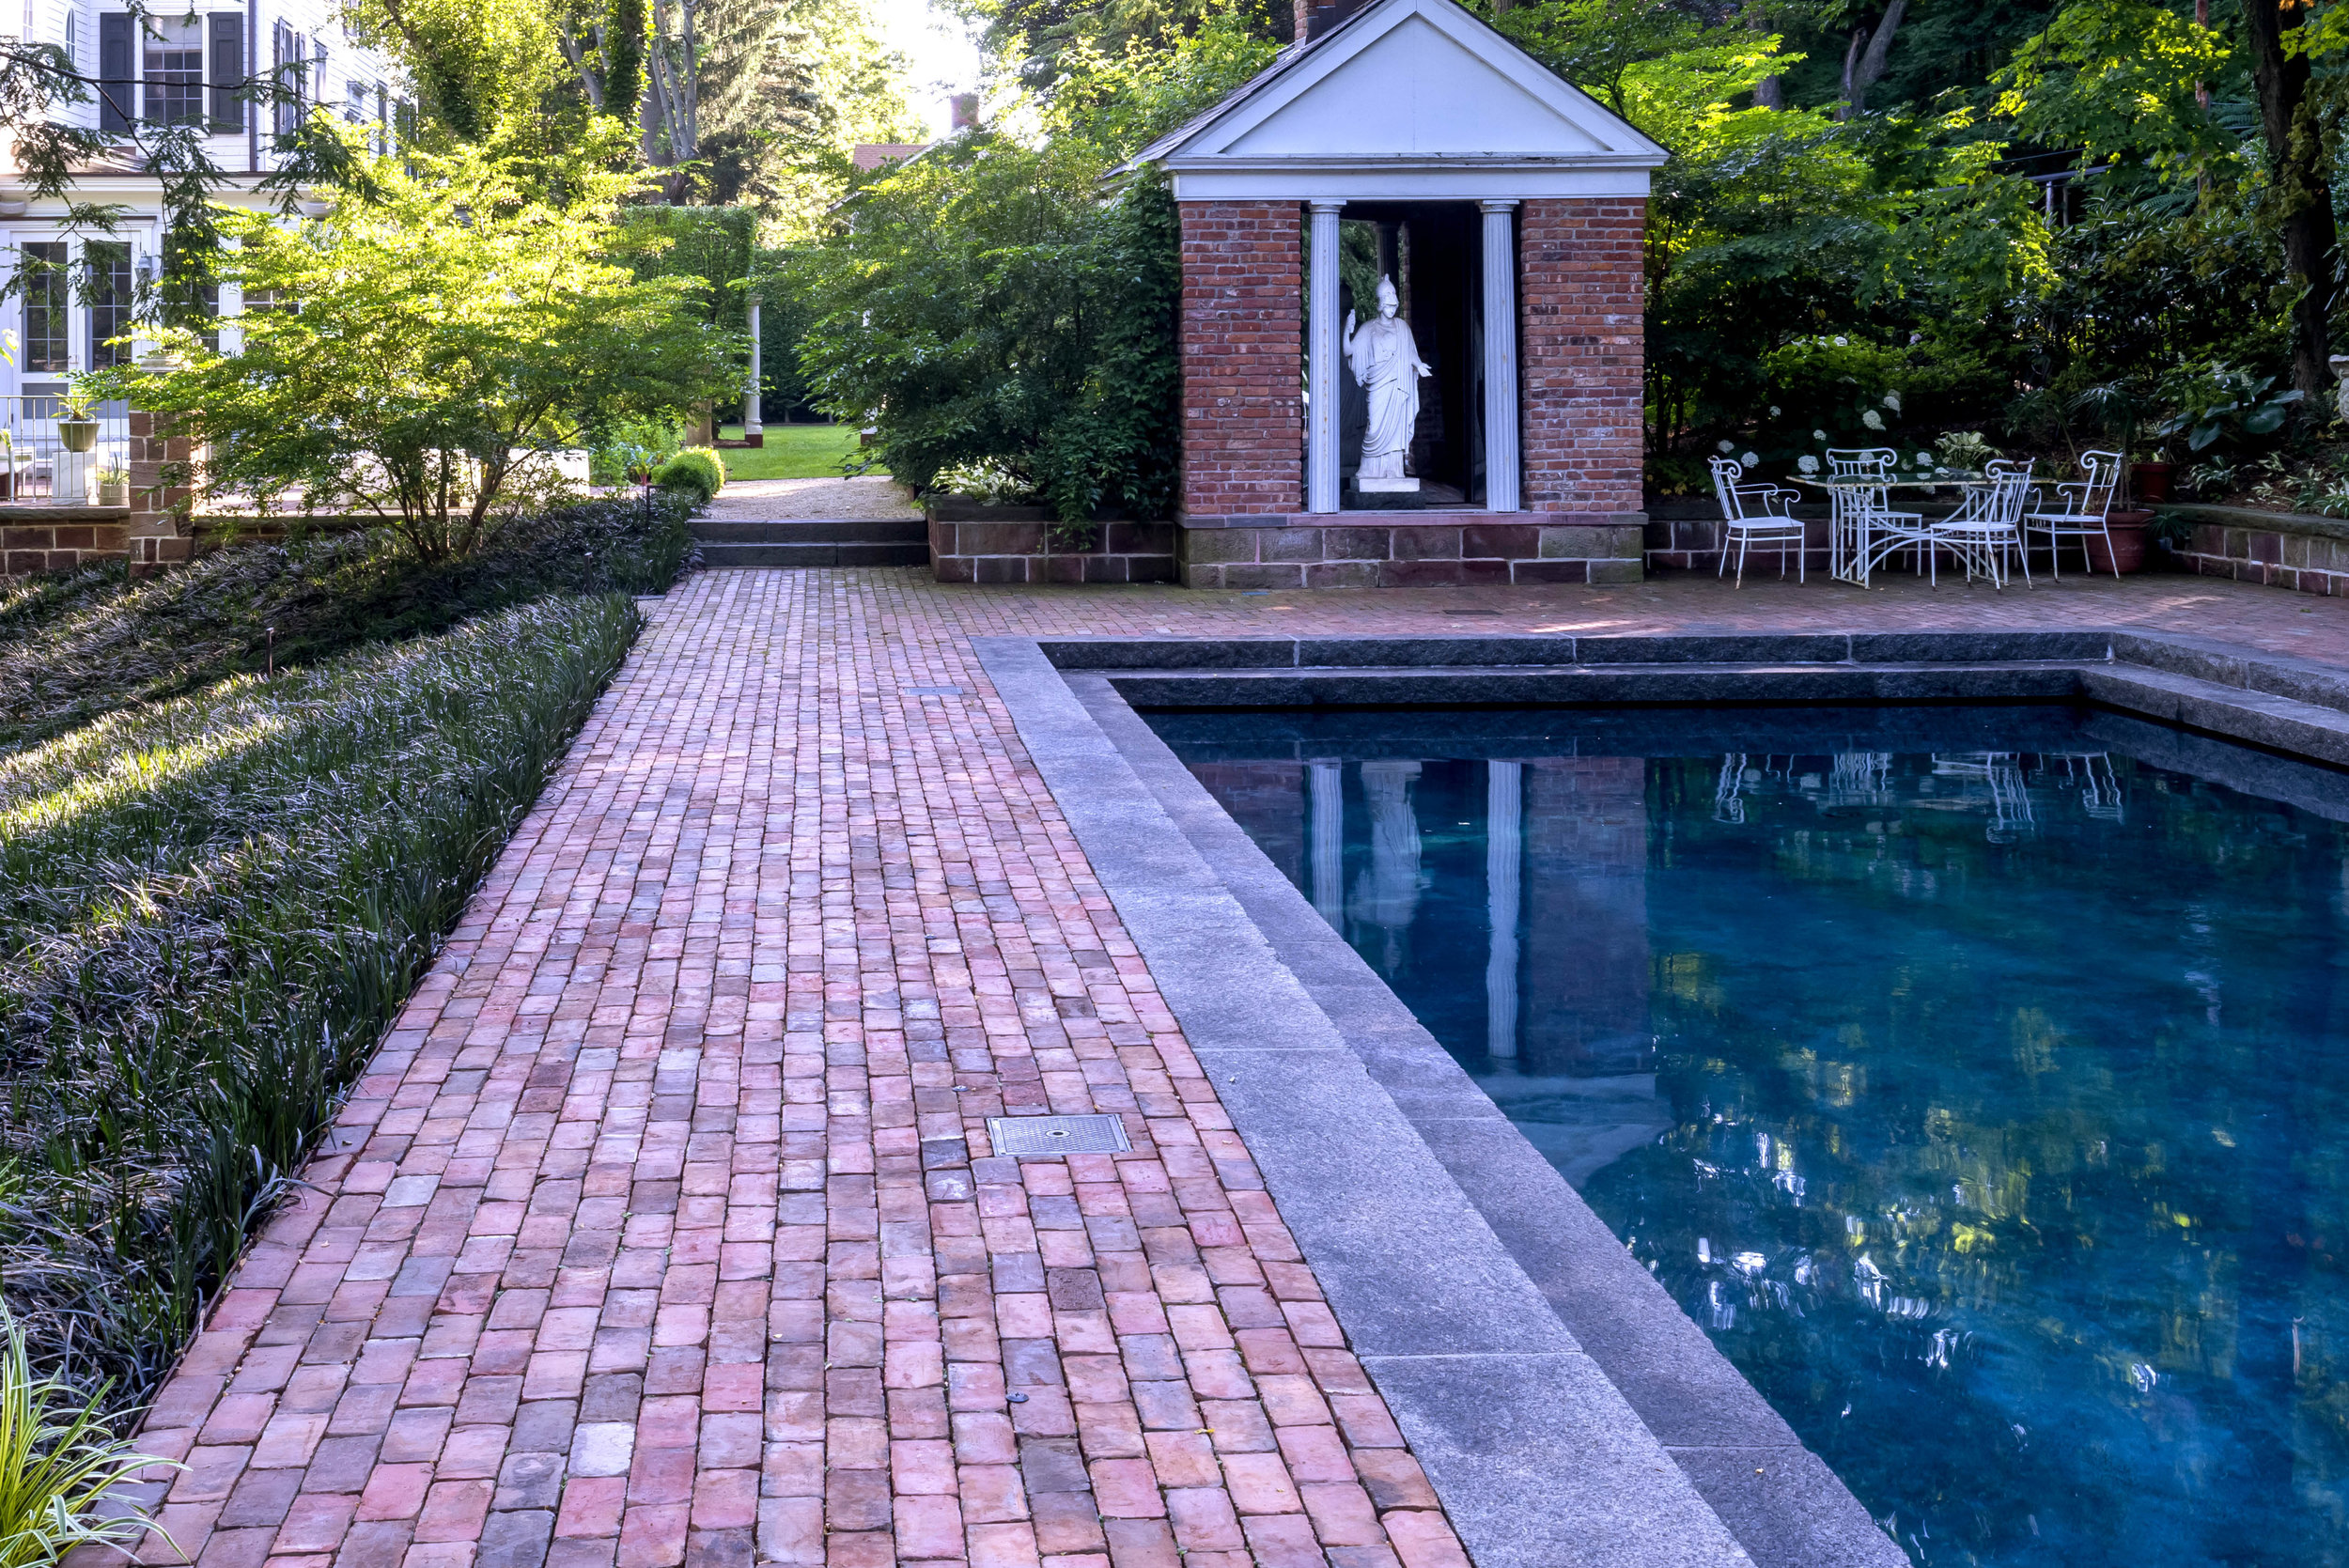 The brick pattern along the pool leads the eye to the folly and beyond at this Land Morphology designed  garden  in Piermont, NJ. Photo by  Rob Cardillo